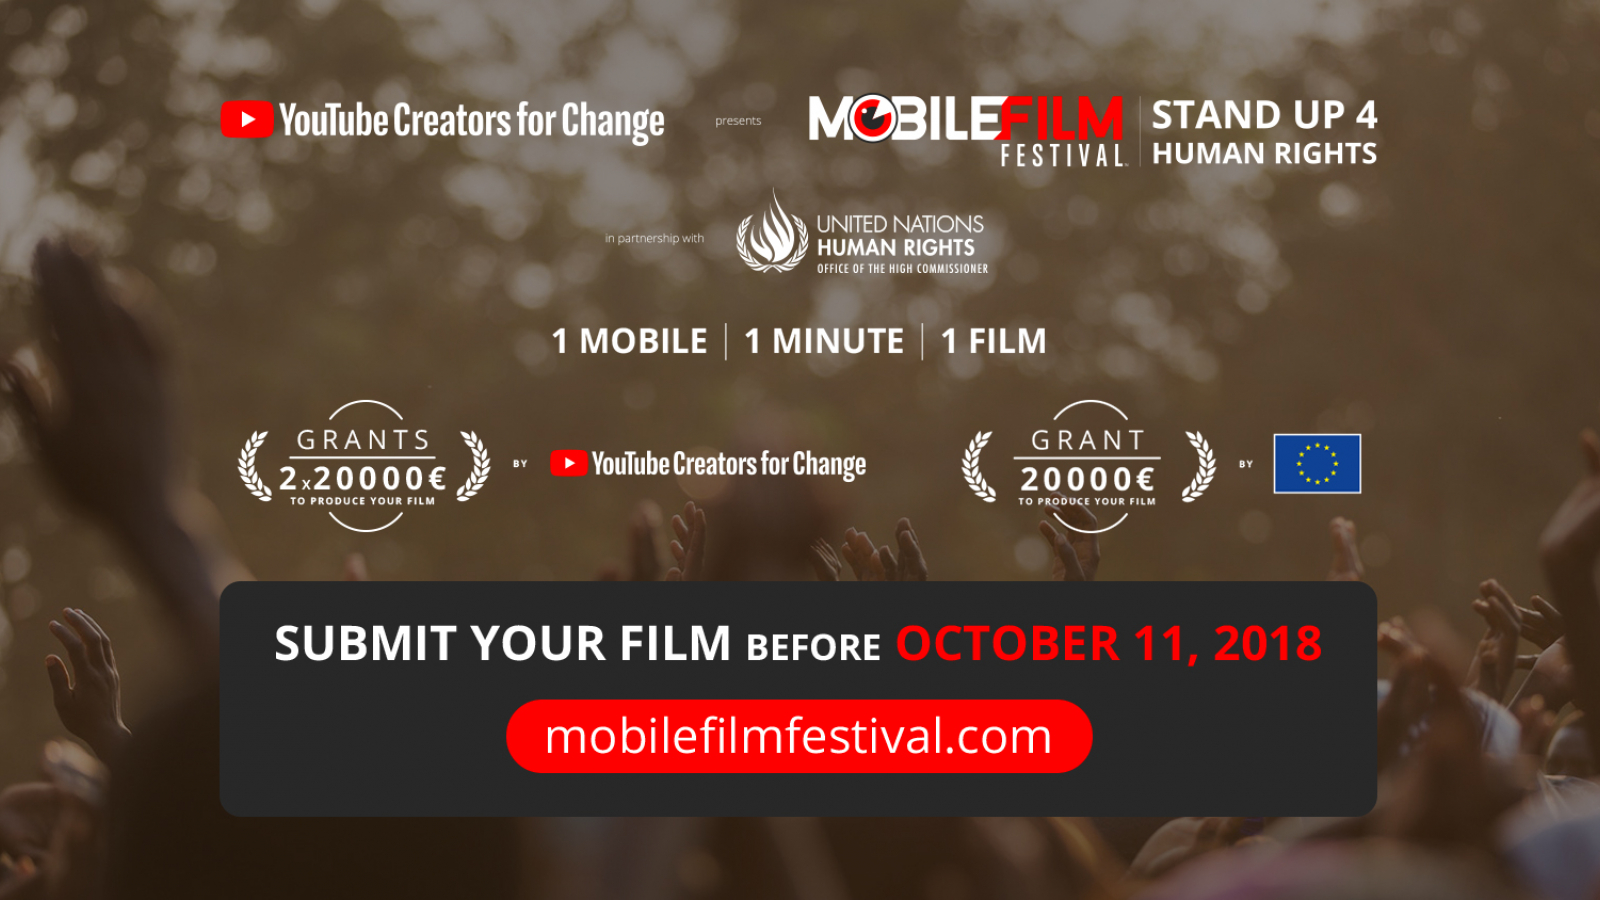 The European Union partner of the Mobile Film Festival